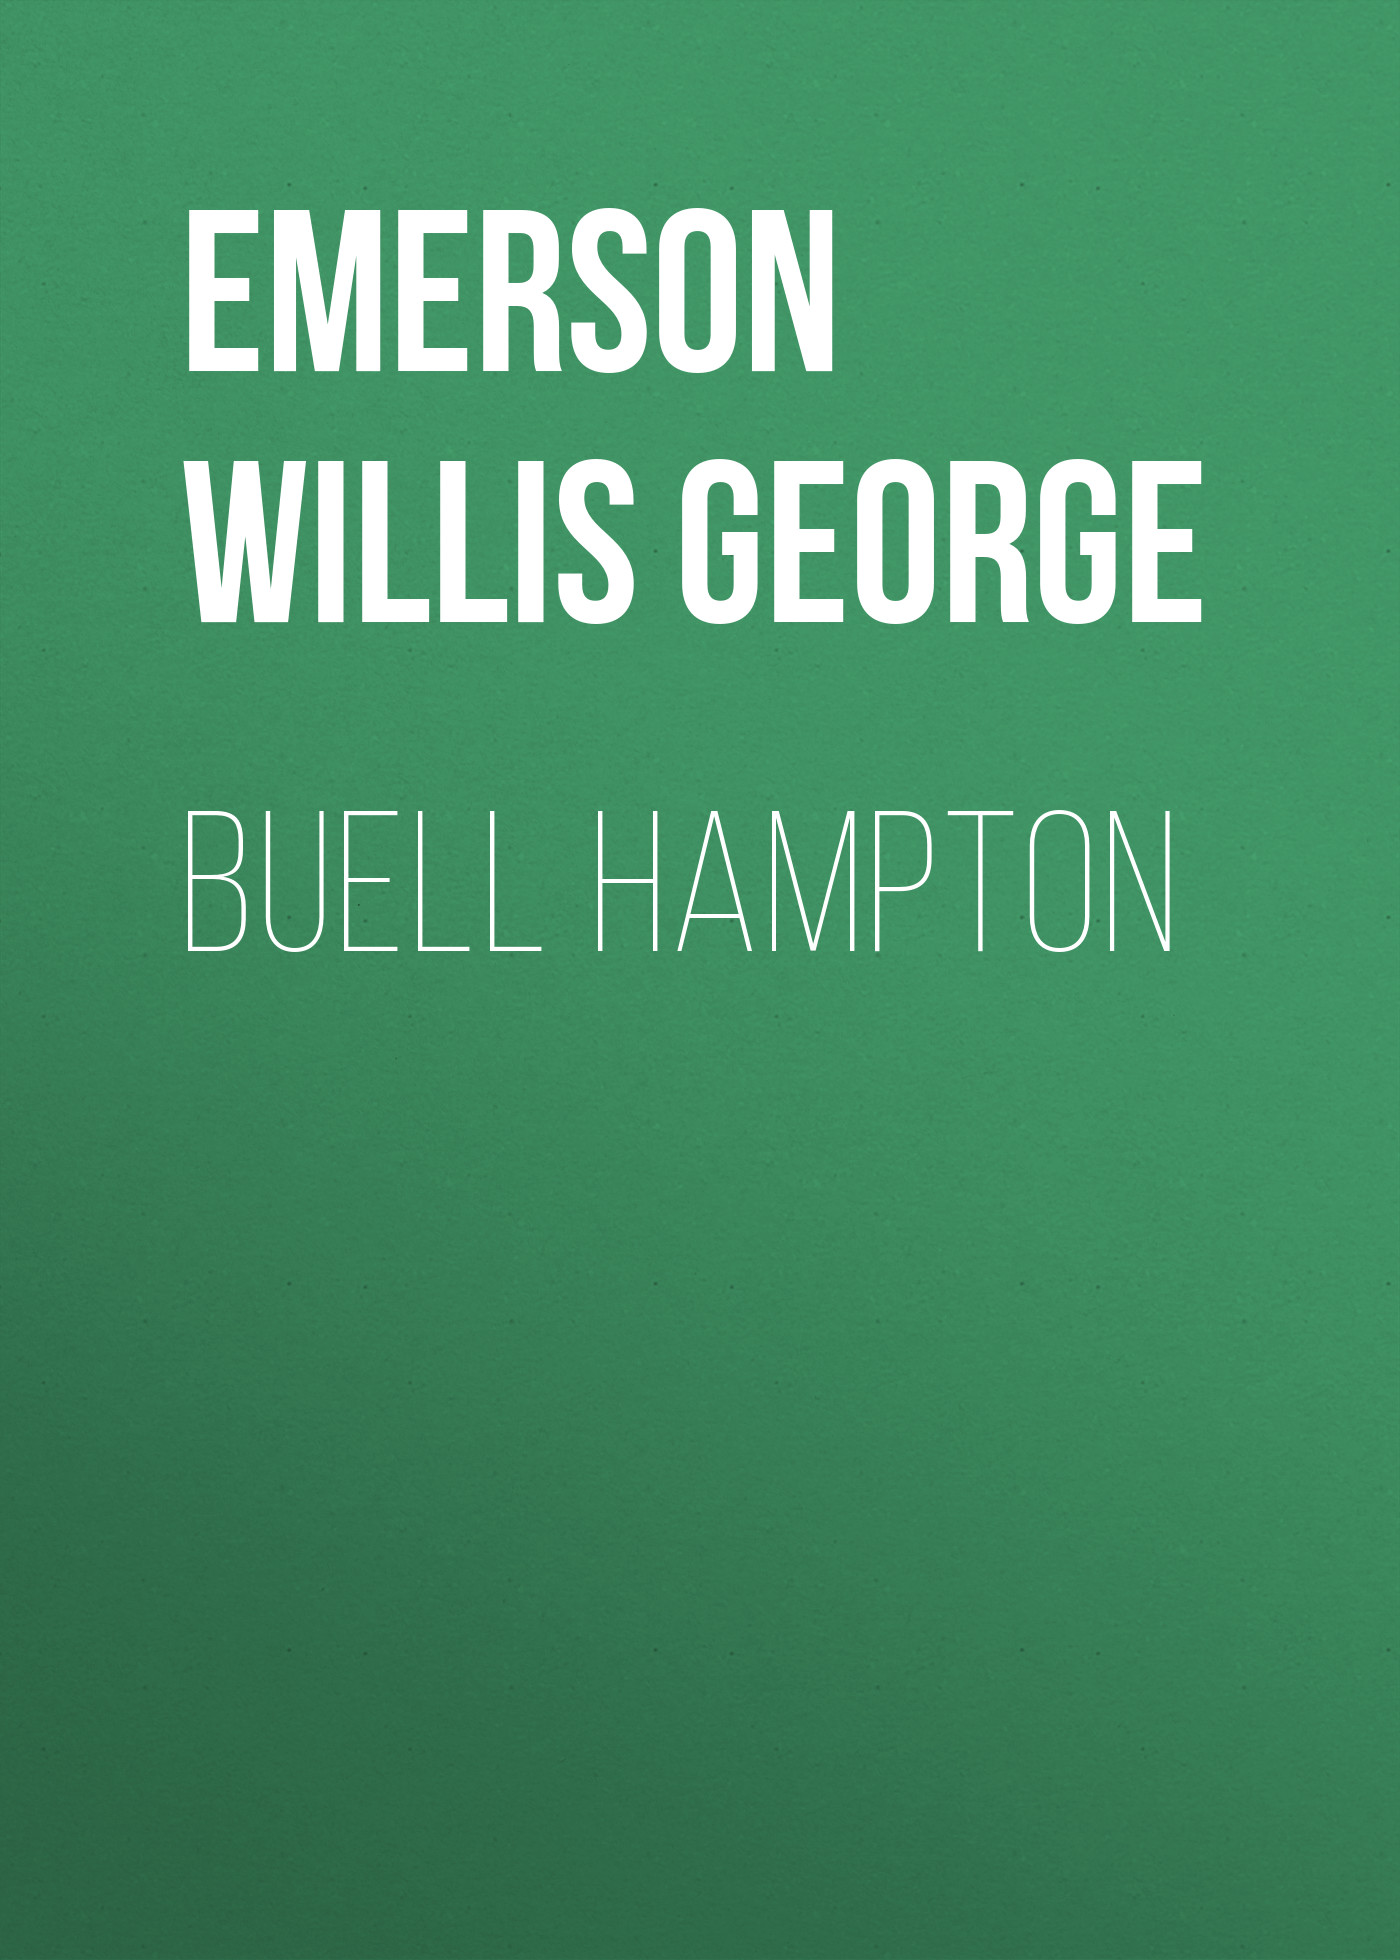 цена Emerson Willis George Buell Hampton